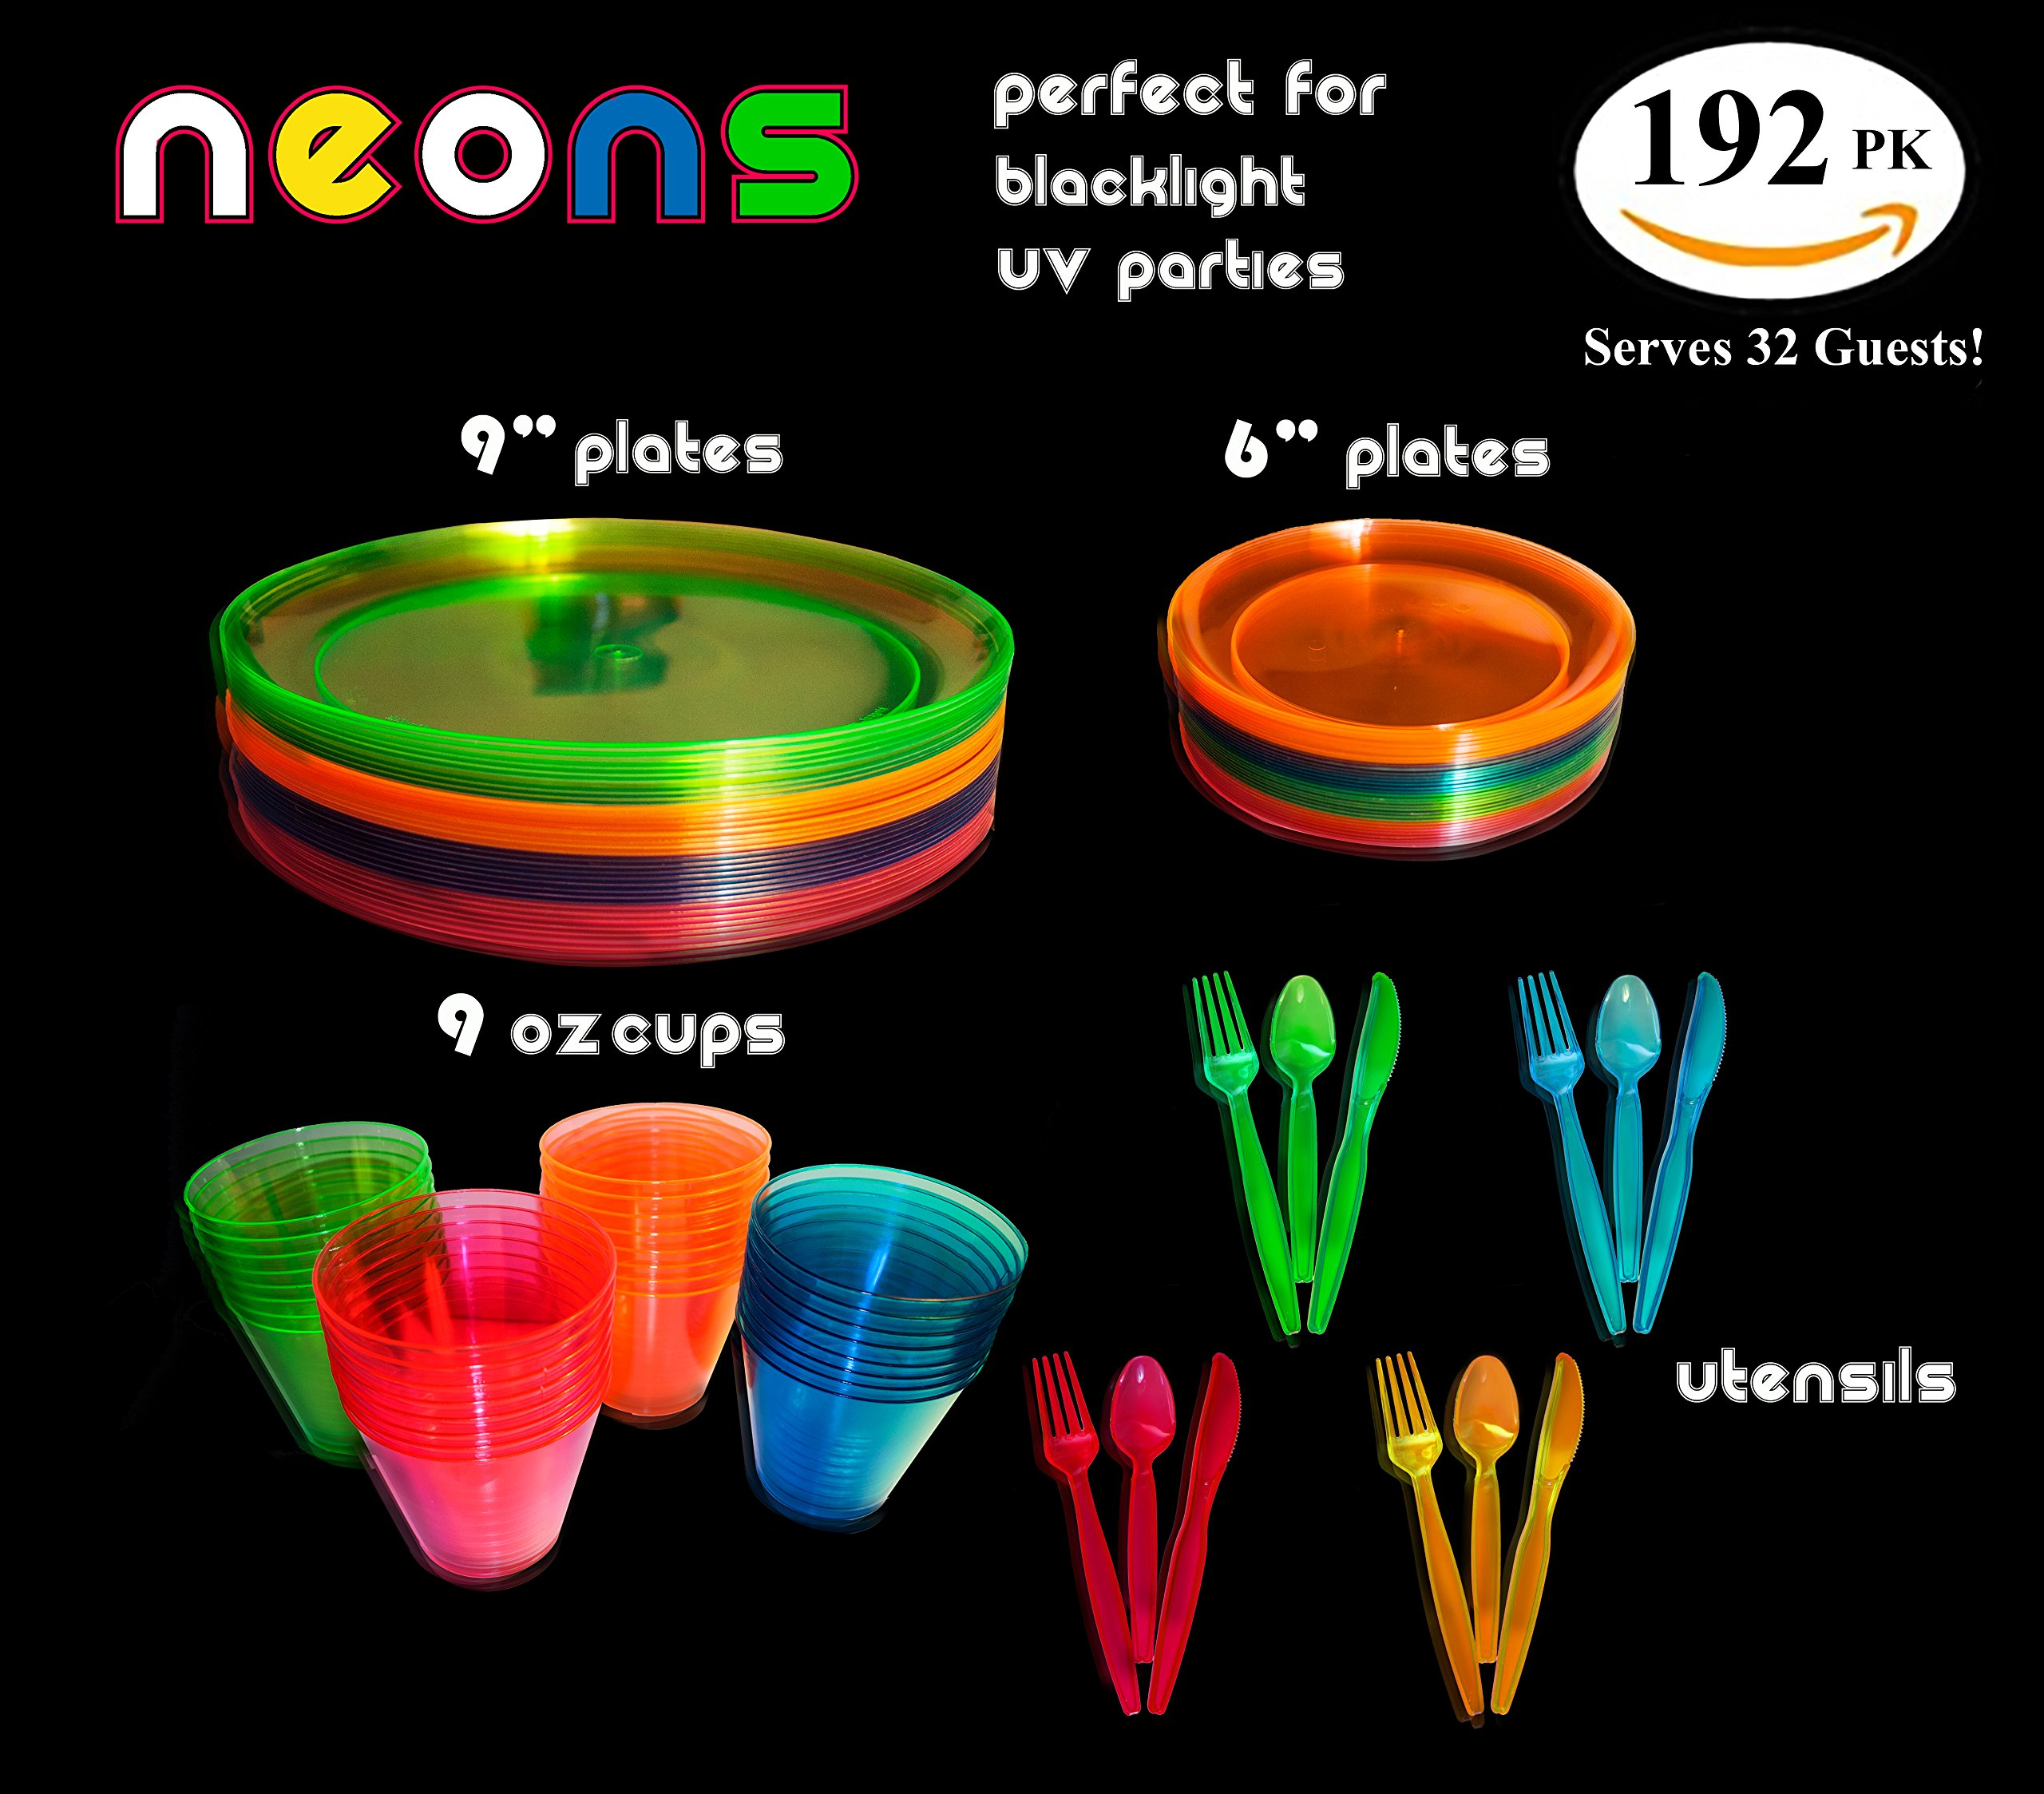 Neon Glow Party Supplies Set, Servers 32, Includes 9 and 6 inch Plates, 9 oz Cups, Forks,Spoons, Knives, 32 of Each, Perfect for Blacklight UV Parties